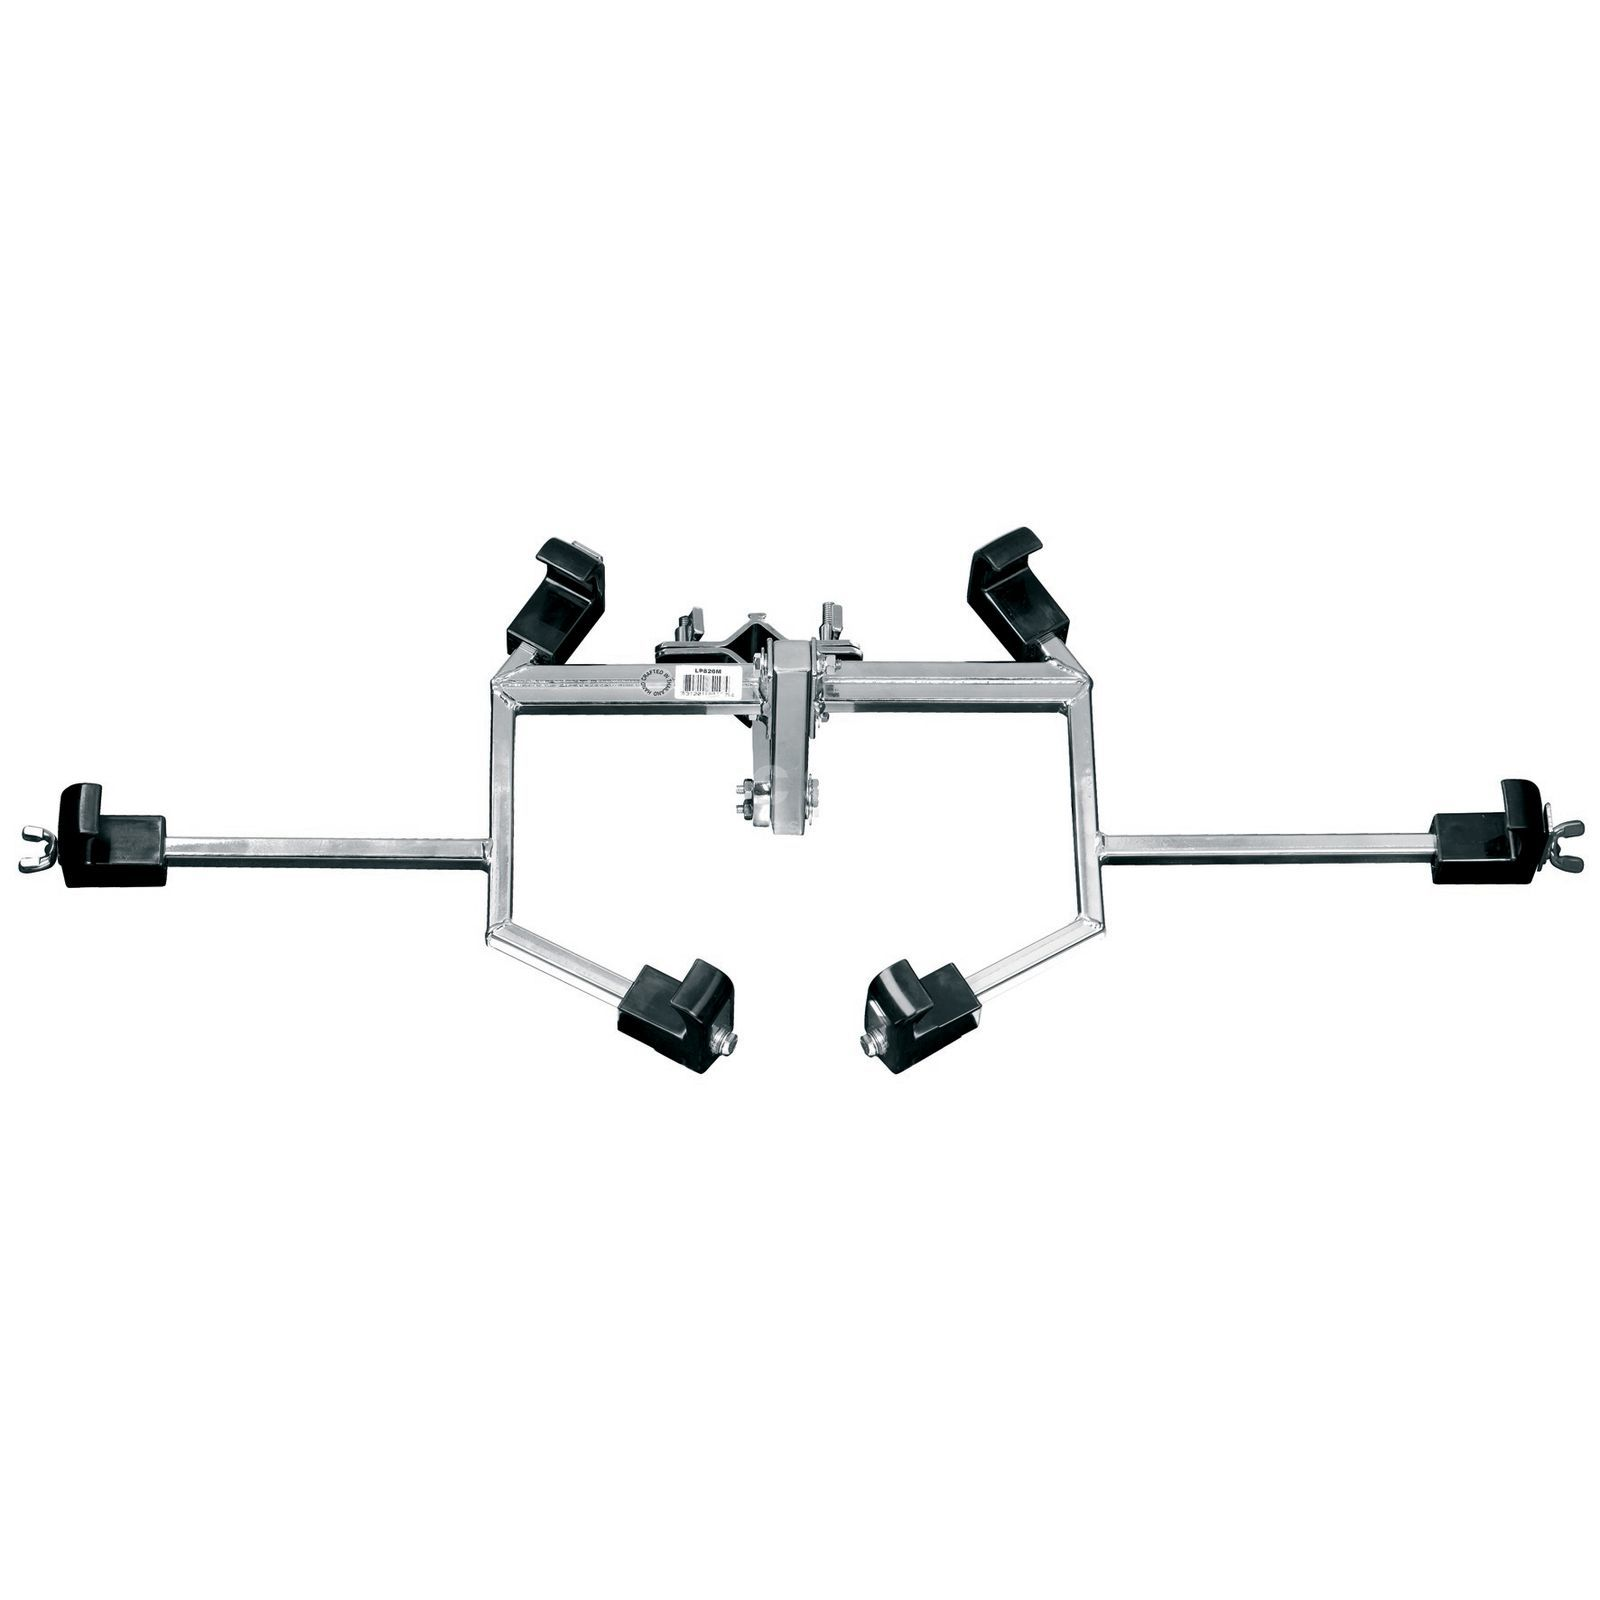 Latin Percussion Compact Conga Mounting System LP826M for Giovanni Series Produktbillede